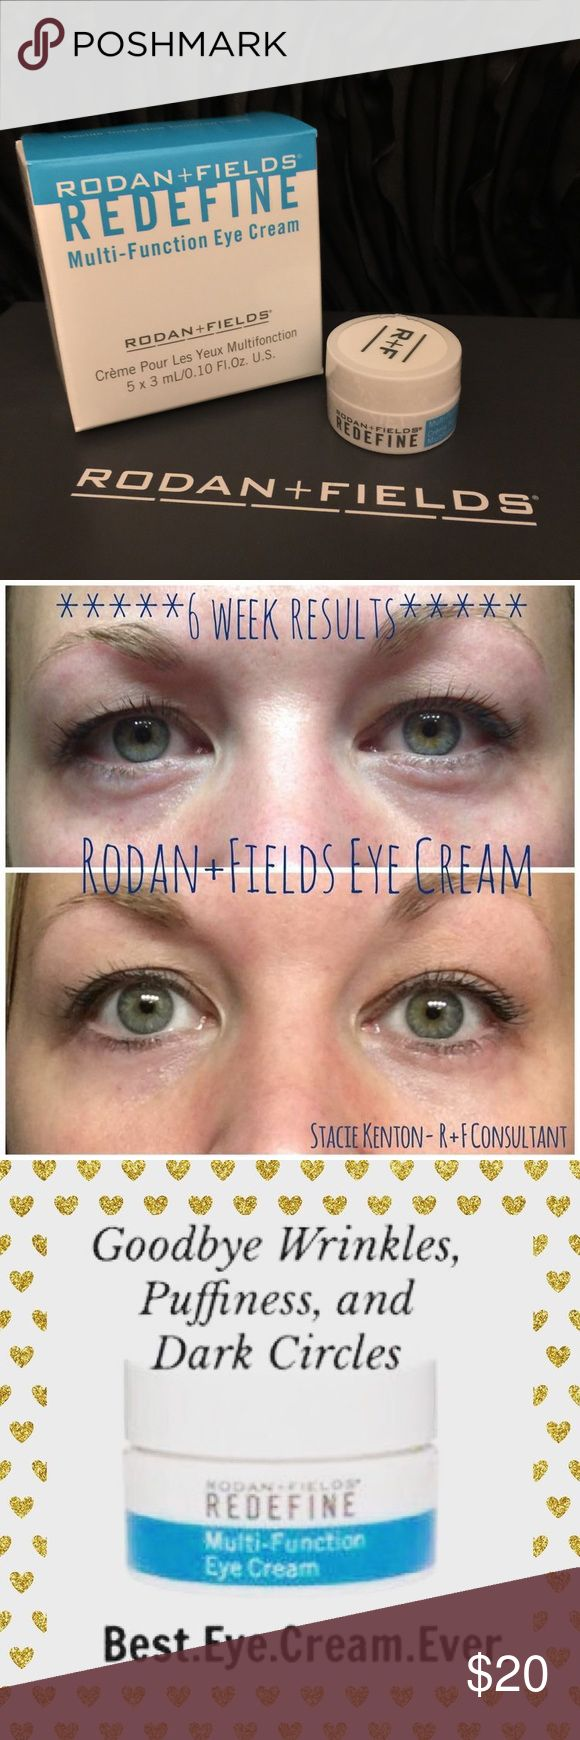 ✨Rodan+Fields MINI MultiFunction Eye Cream✨ This is for 1 of 10 MINIS that I have 💙Tired of waking up to dark circles and puffiness under the eyes? Look on the bright side this winter and start using REDEFINE Multi-Function Eye Cream. It's packed with powerful anti-aging peptides to help minimize the appearance of crow's feet and puffiness, while brightening up the eye area 💁🏻 Rodan+Fields Makeup